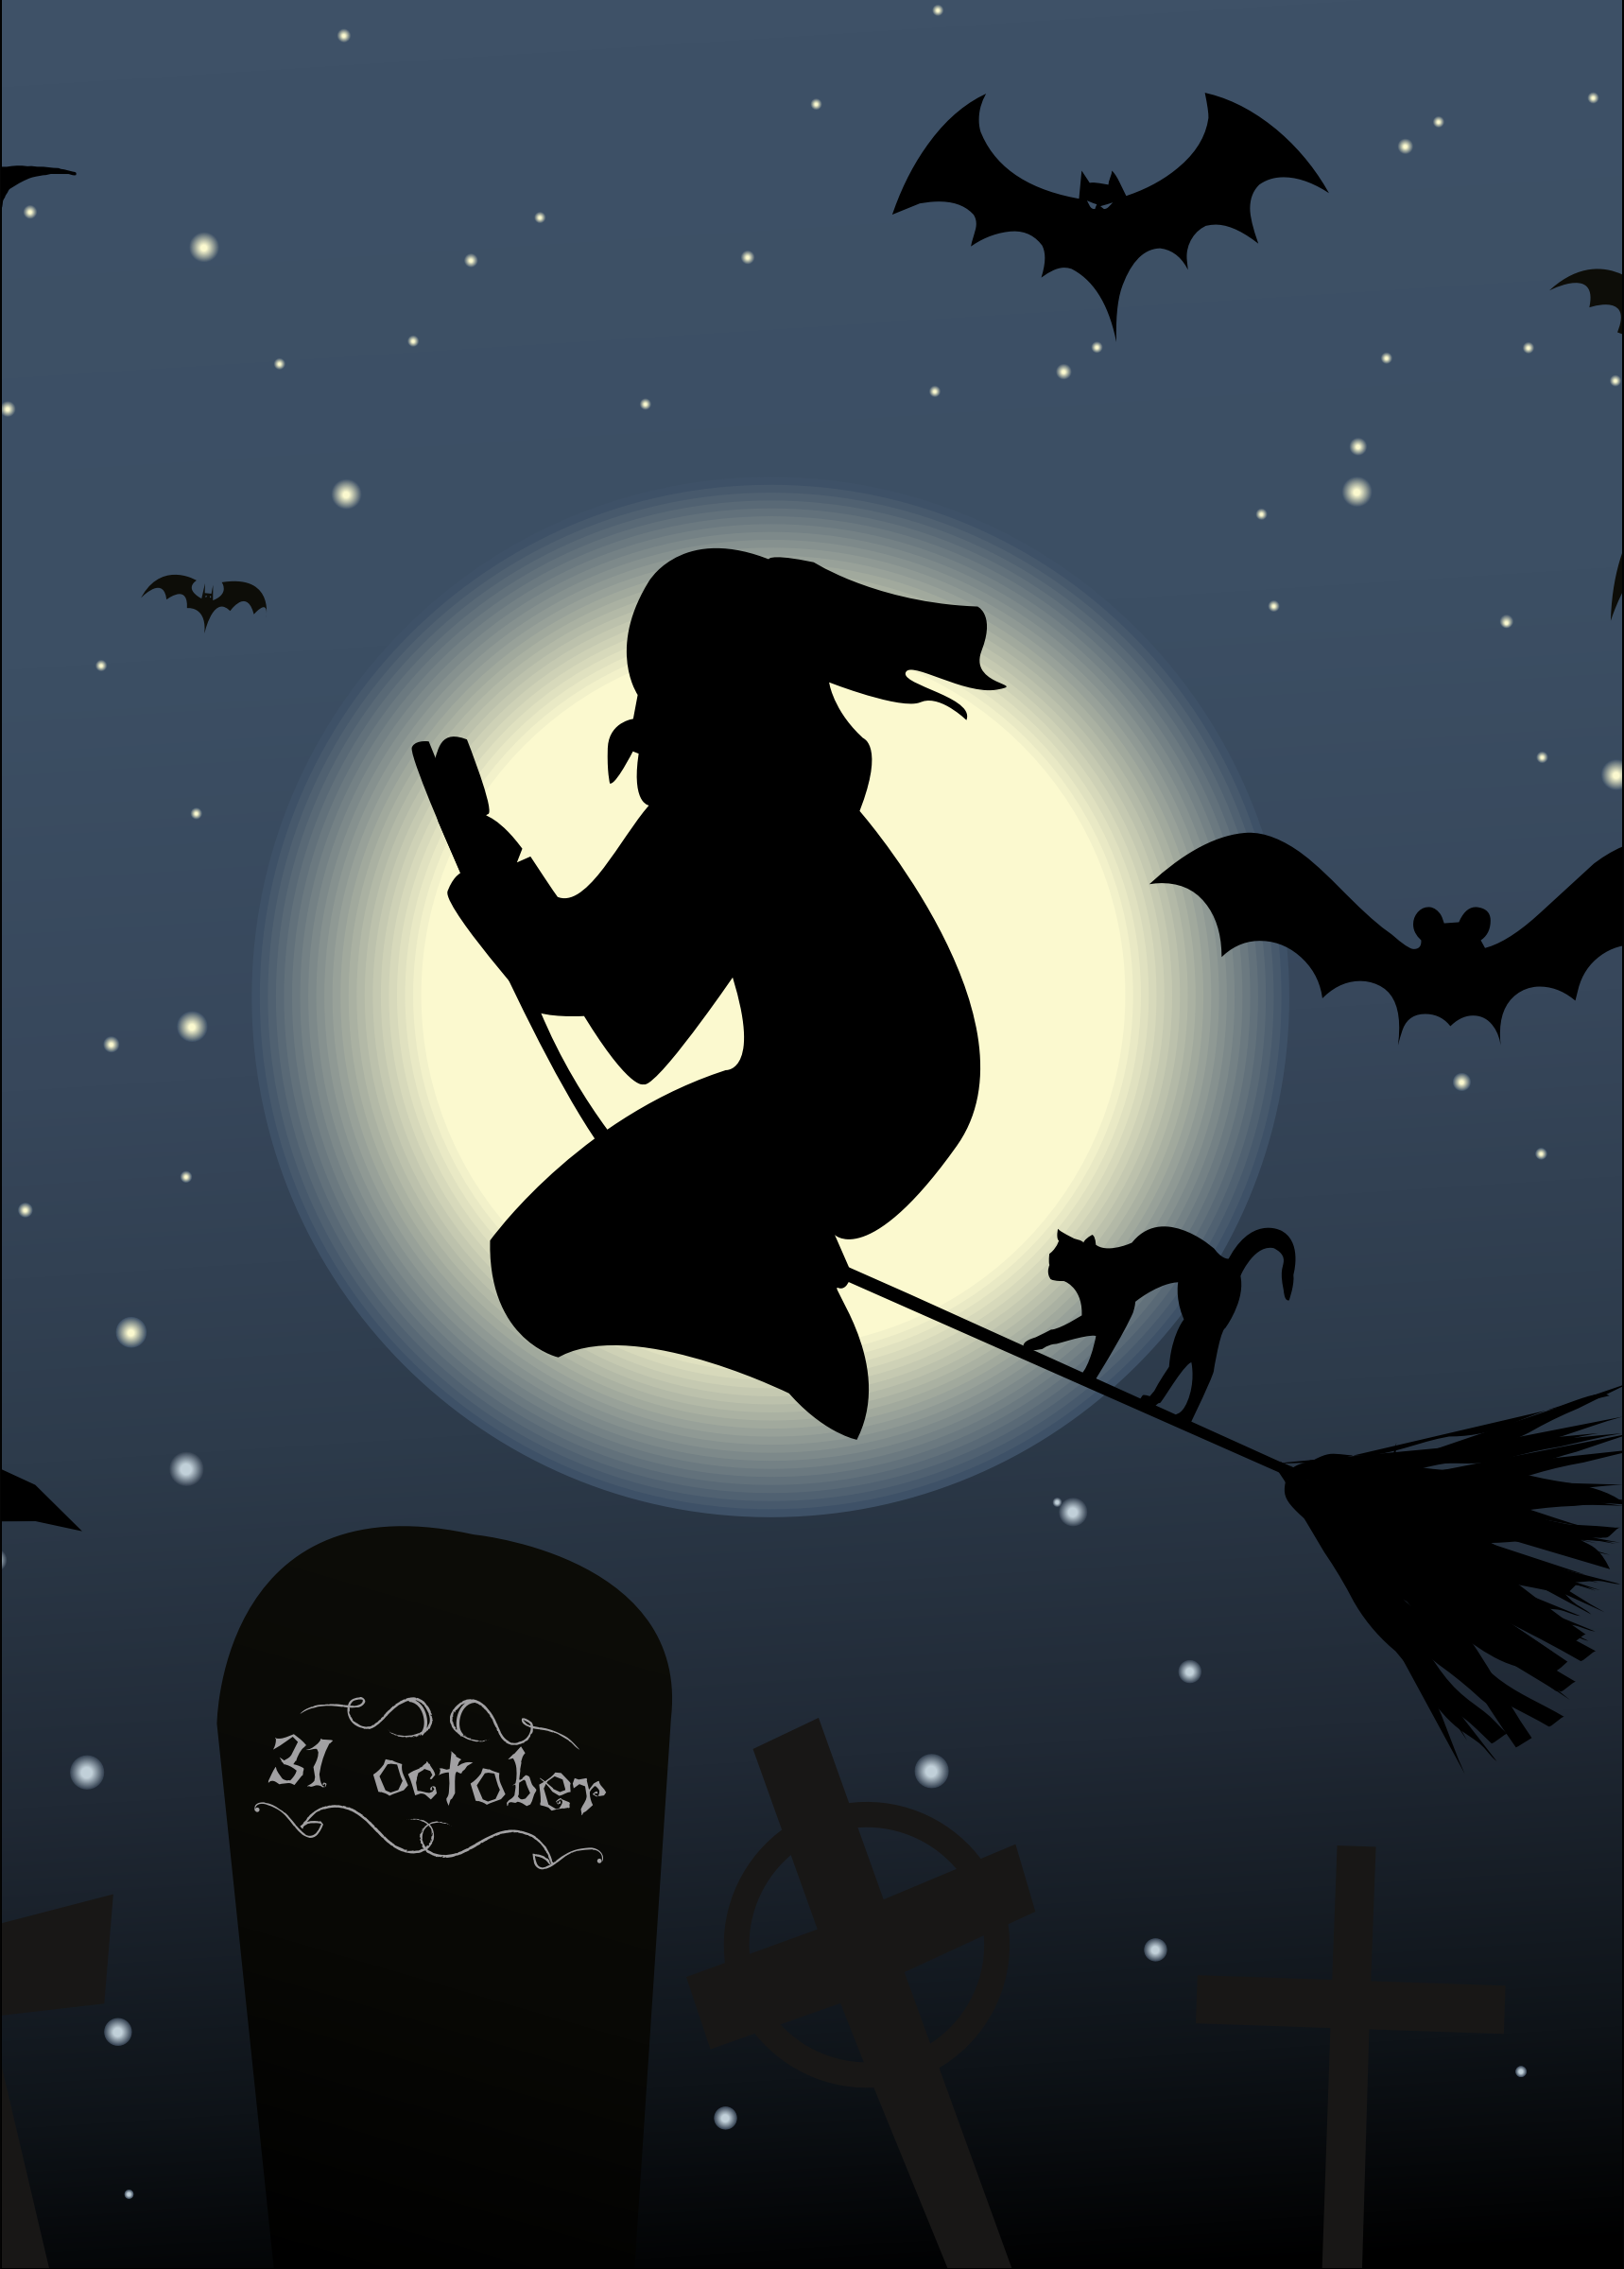 animated halloween clipart - photo #19